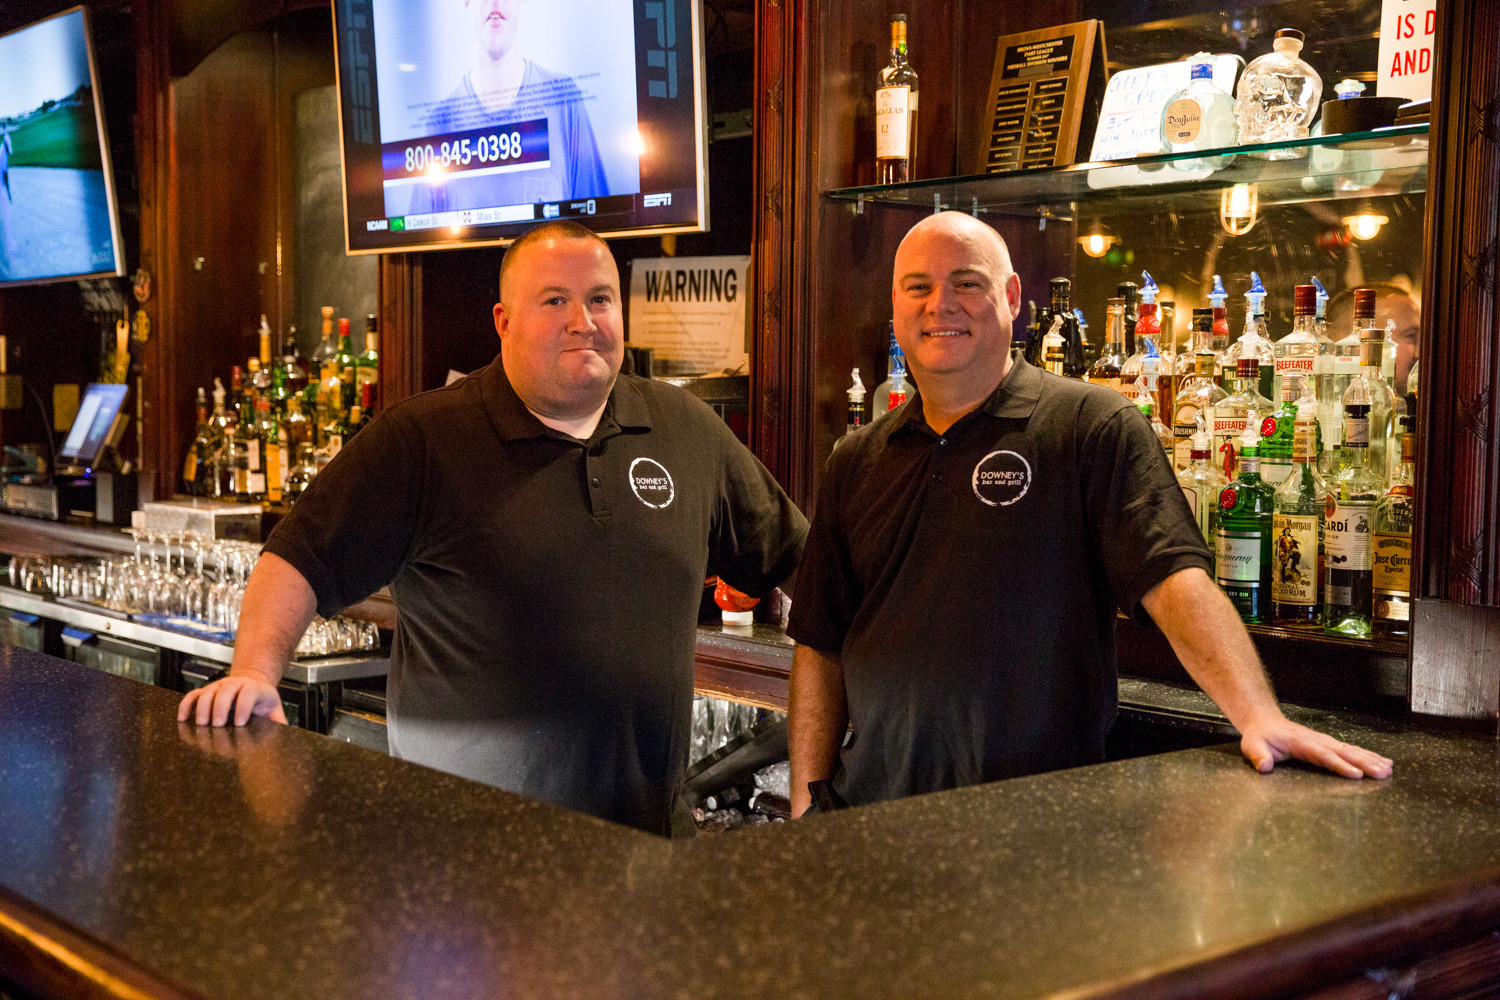 Owners Brian Downey and Bobby Cook stand behind the bar at Downey's Bar and Grill. The two opened Downey's Bar and Grill at the end of October.